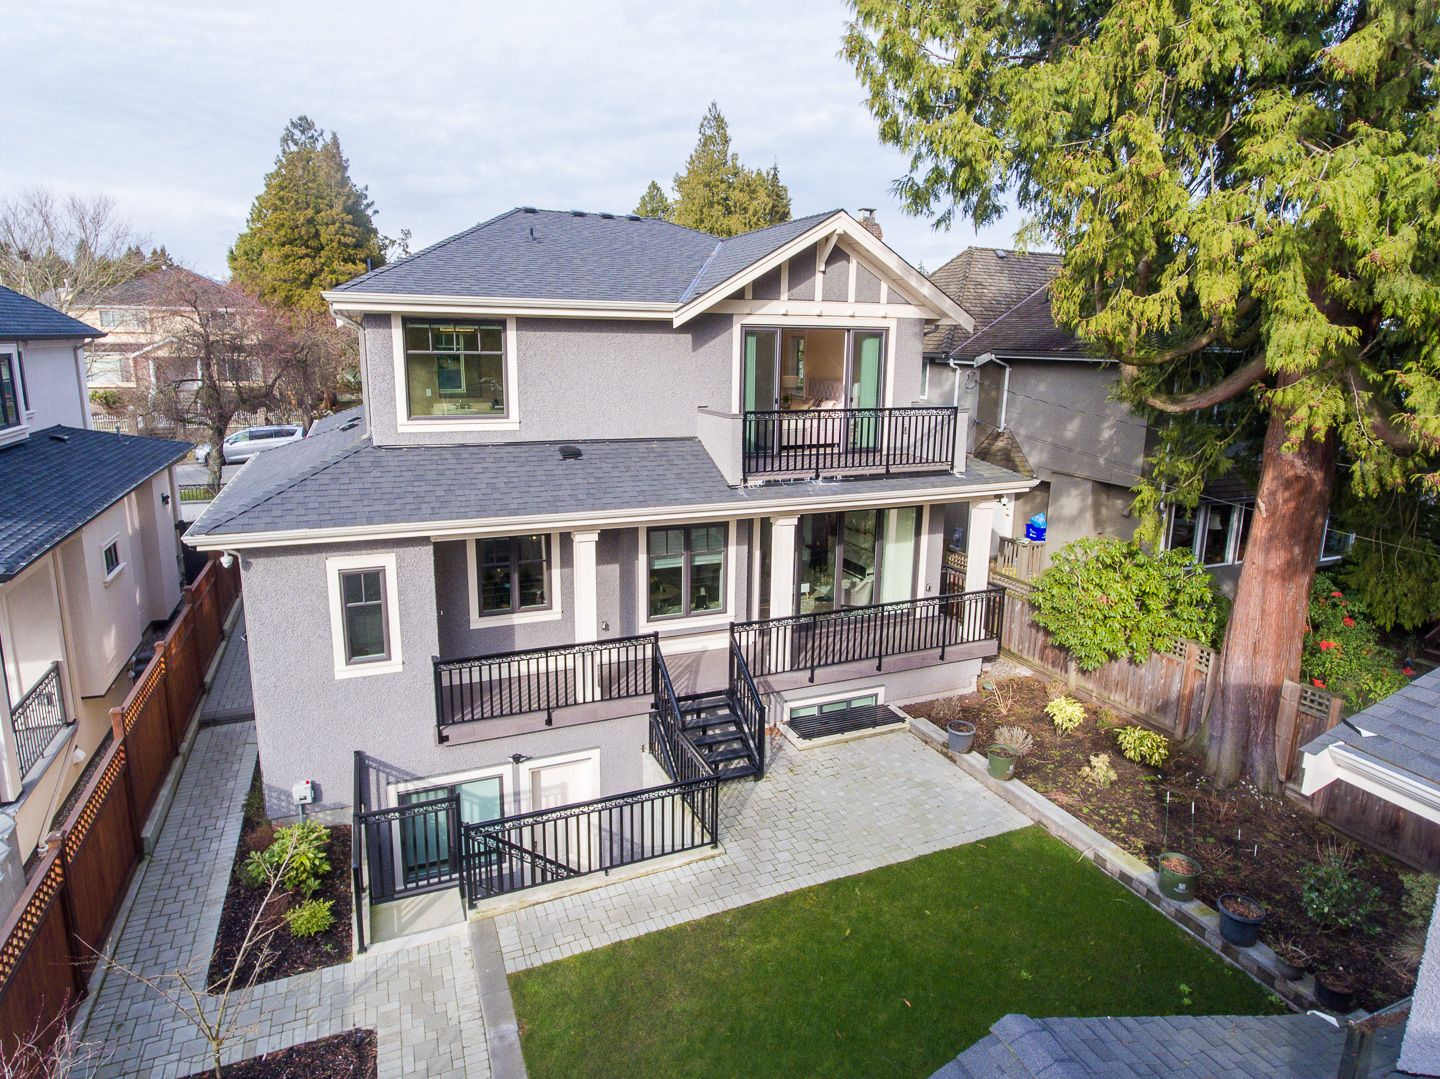 Photo 40: Photos: 1744 WEST 61ST AVE in VANCOUVER: South Granville House for sale (Vancouver West)  : MLS®# R2546980